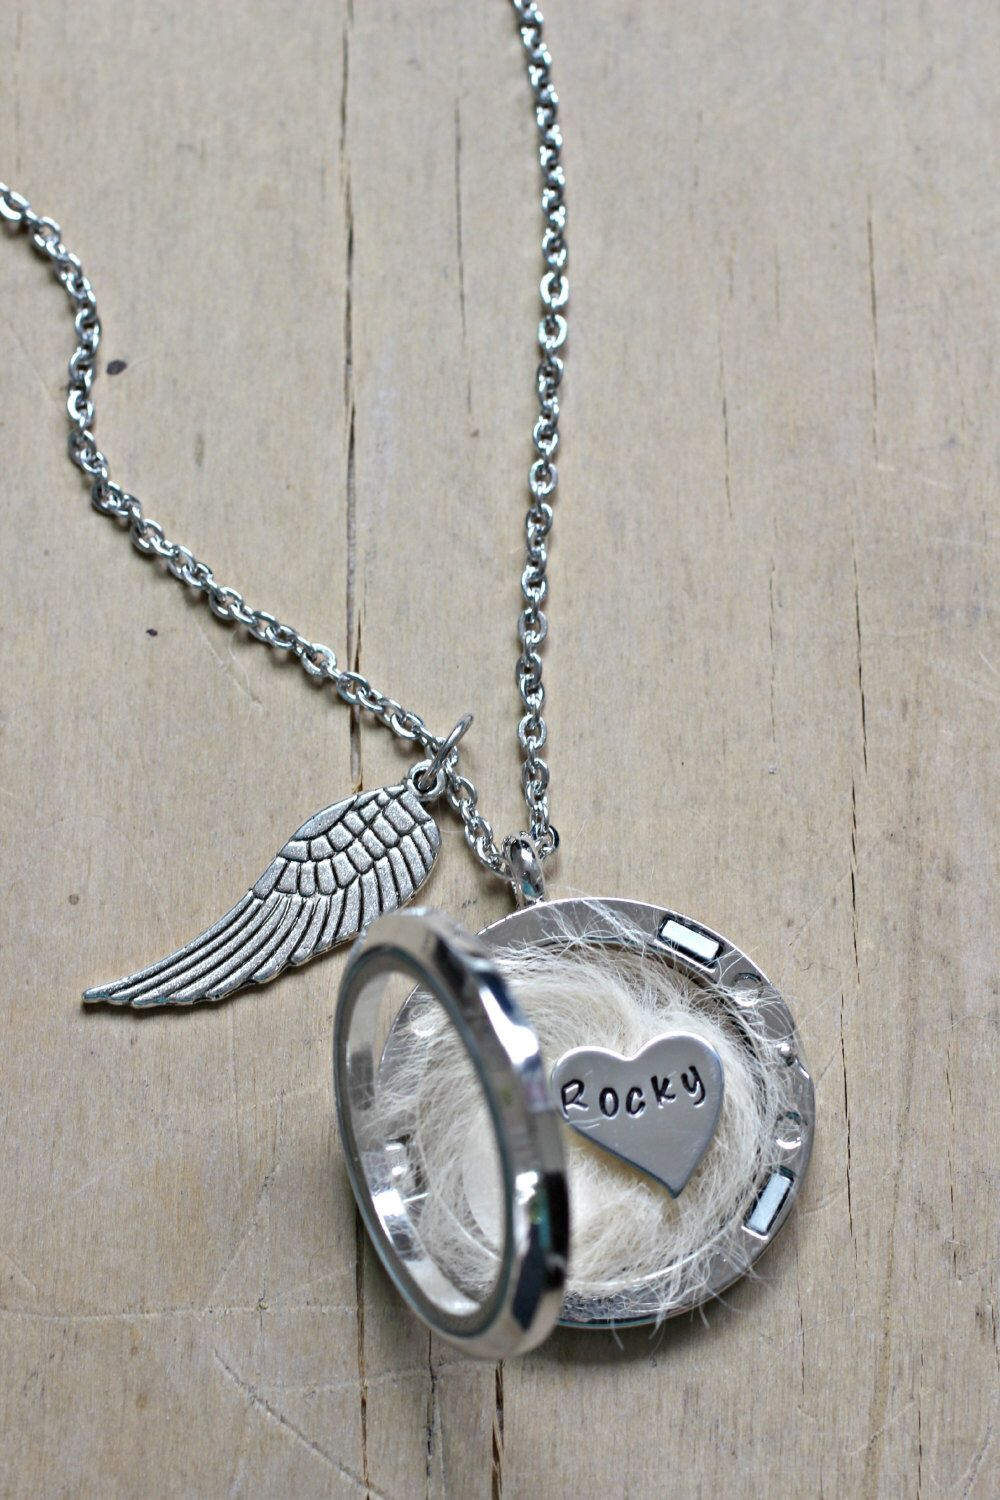 necklaces always shape my in women locket pup keepsake heart products jewelry pet cremation stainless ash urn bling pendant memorial necklace steel